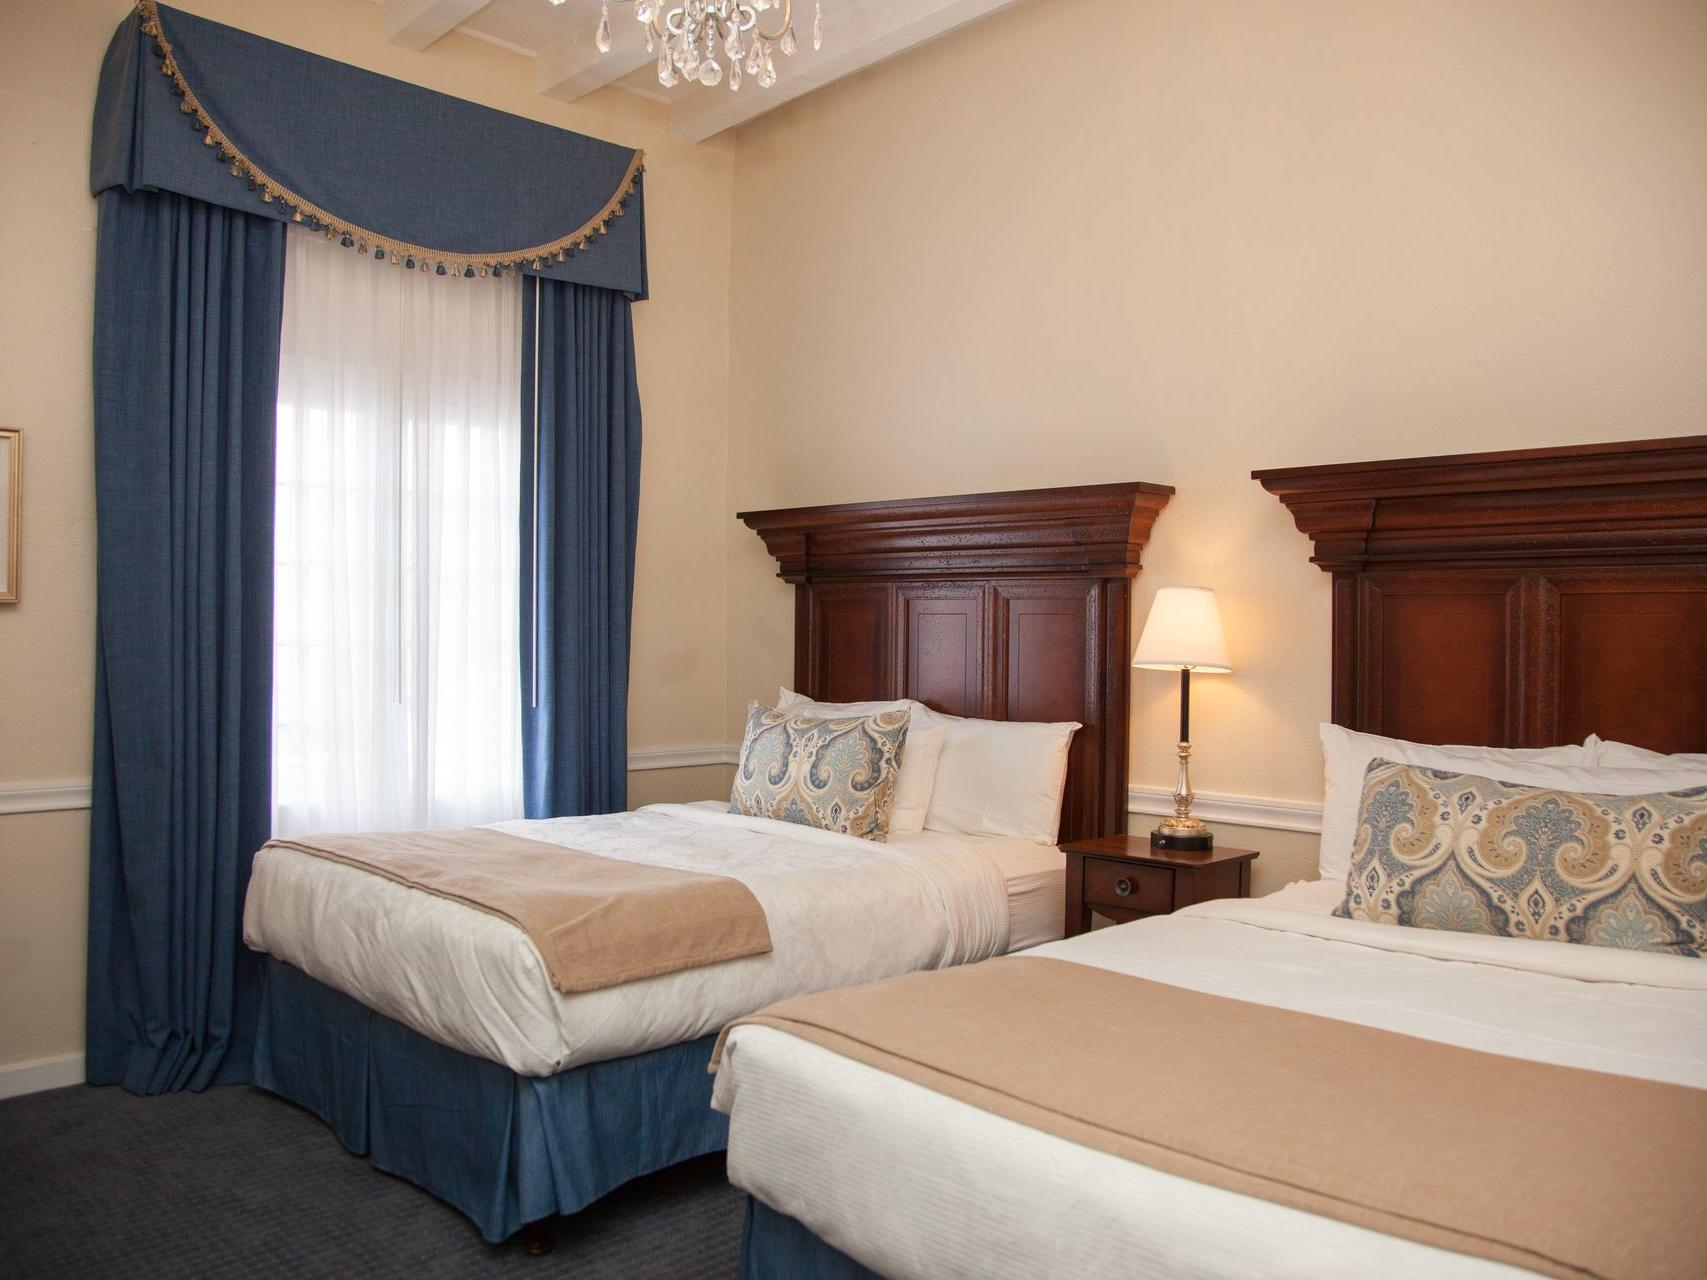 Two Queen Suite with two beds at Hotel St. Pierre